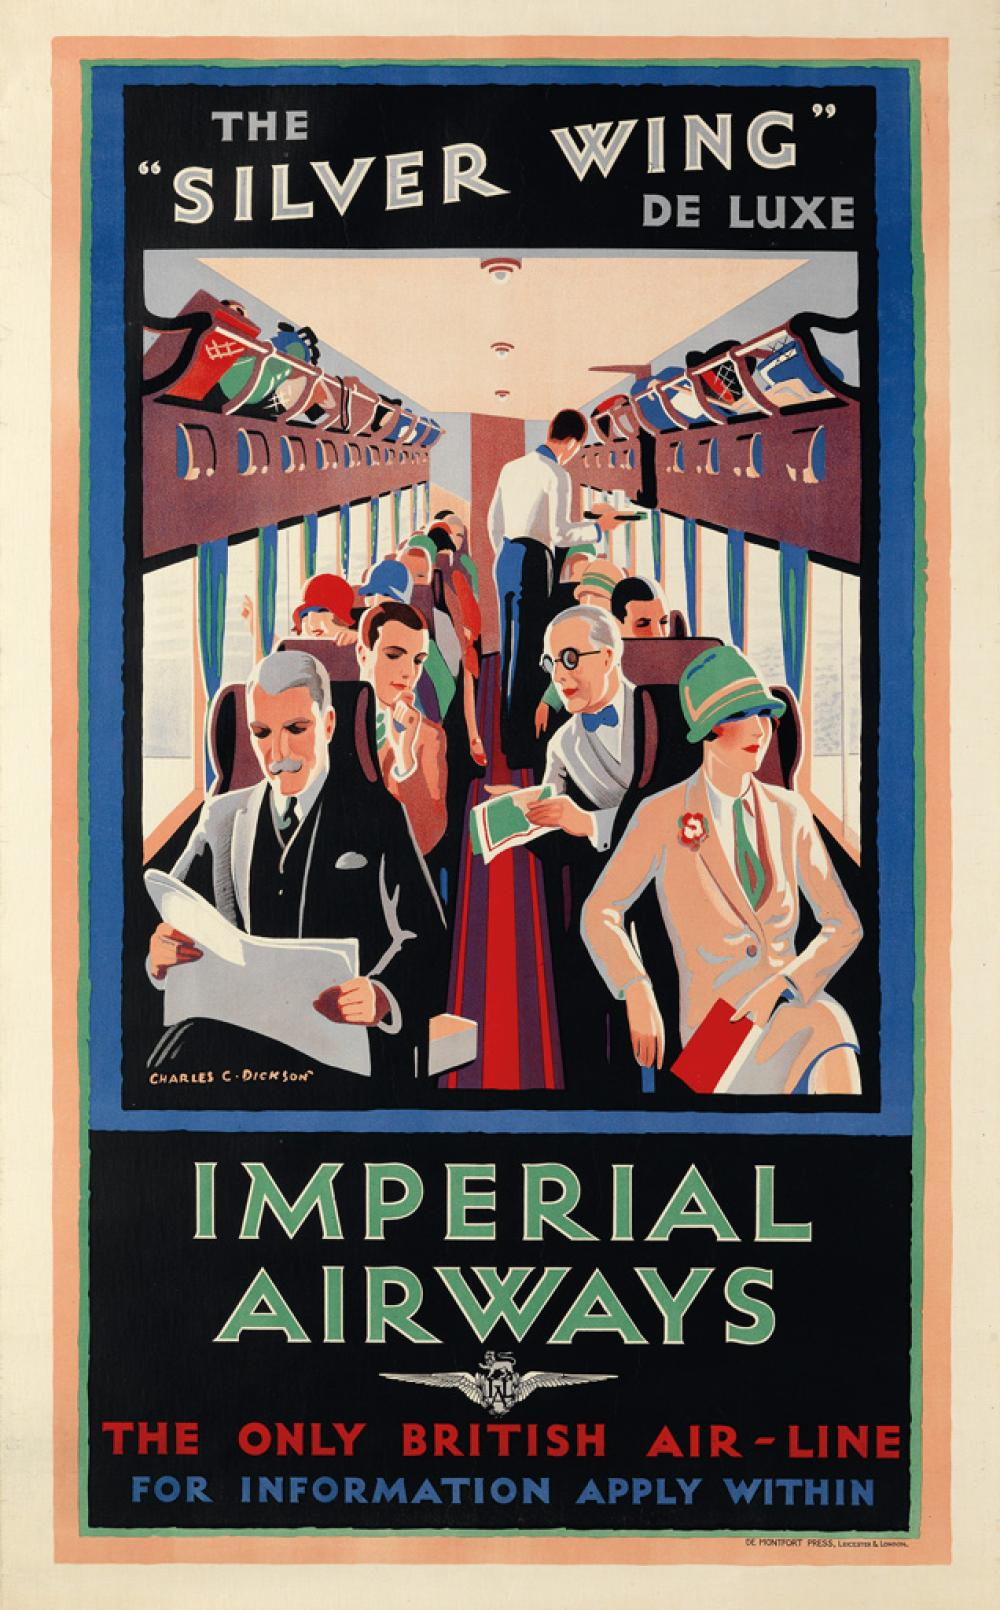 CHARLES C. DICKSON (DATES UNKNOWN). IMPERIAL AIRWAYS / THE